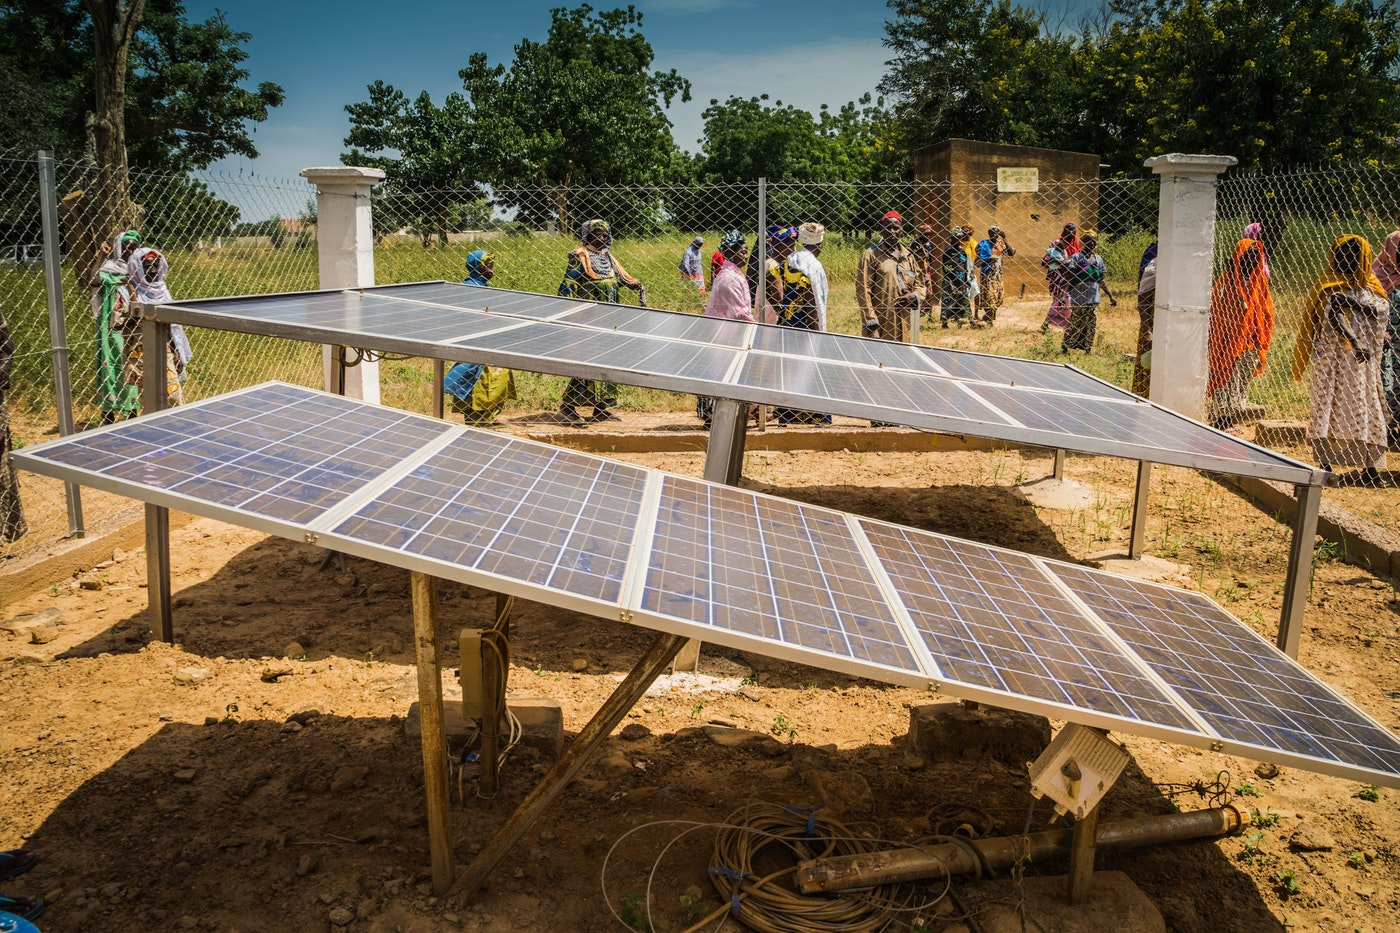 Photo by  UNPD  | Massantola, Mali installation of a clean pump system that uses solar energy for gardening